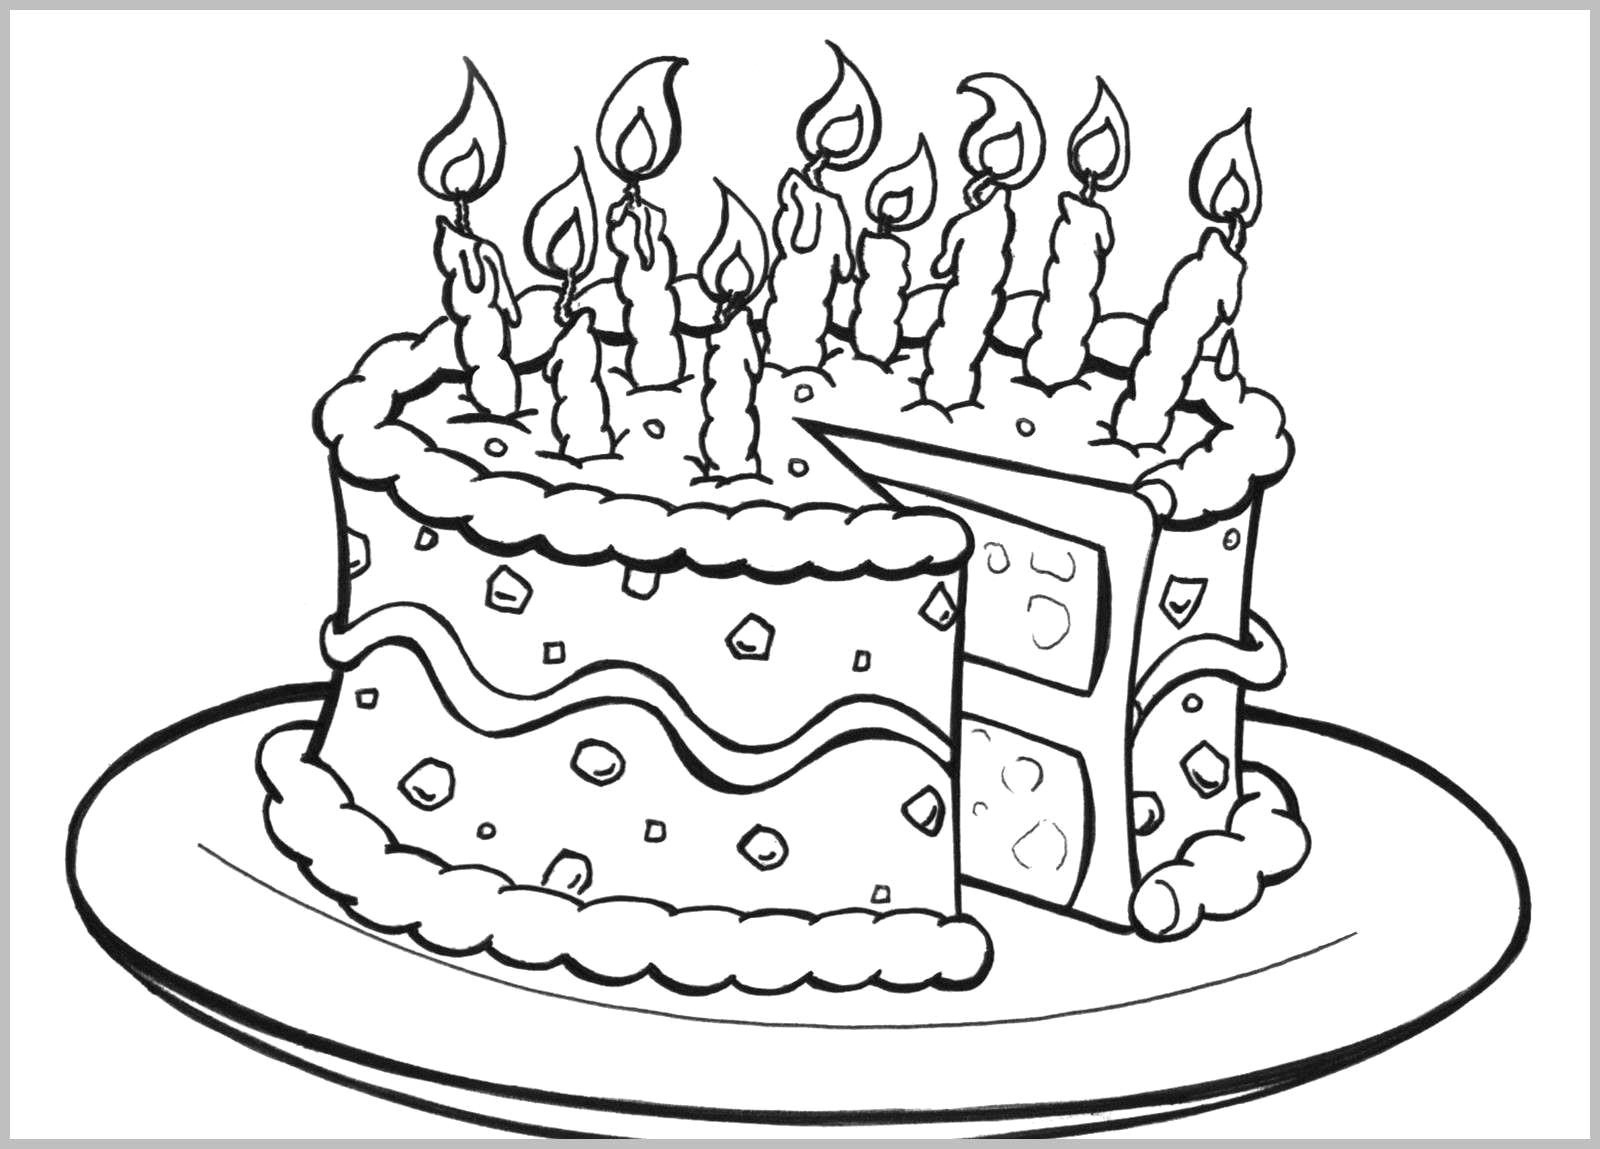 Free Printable Birthday Cake Coloring Pages For Kids Cool2Bkids - Free Printable Birthday Cake